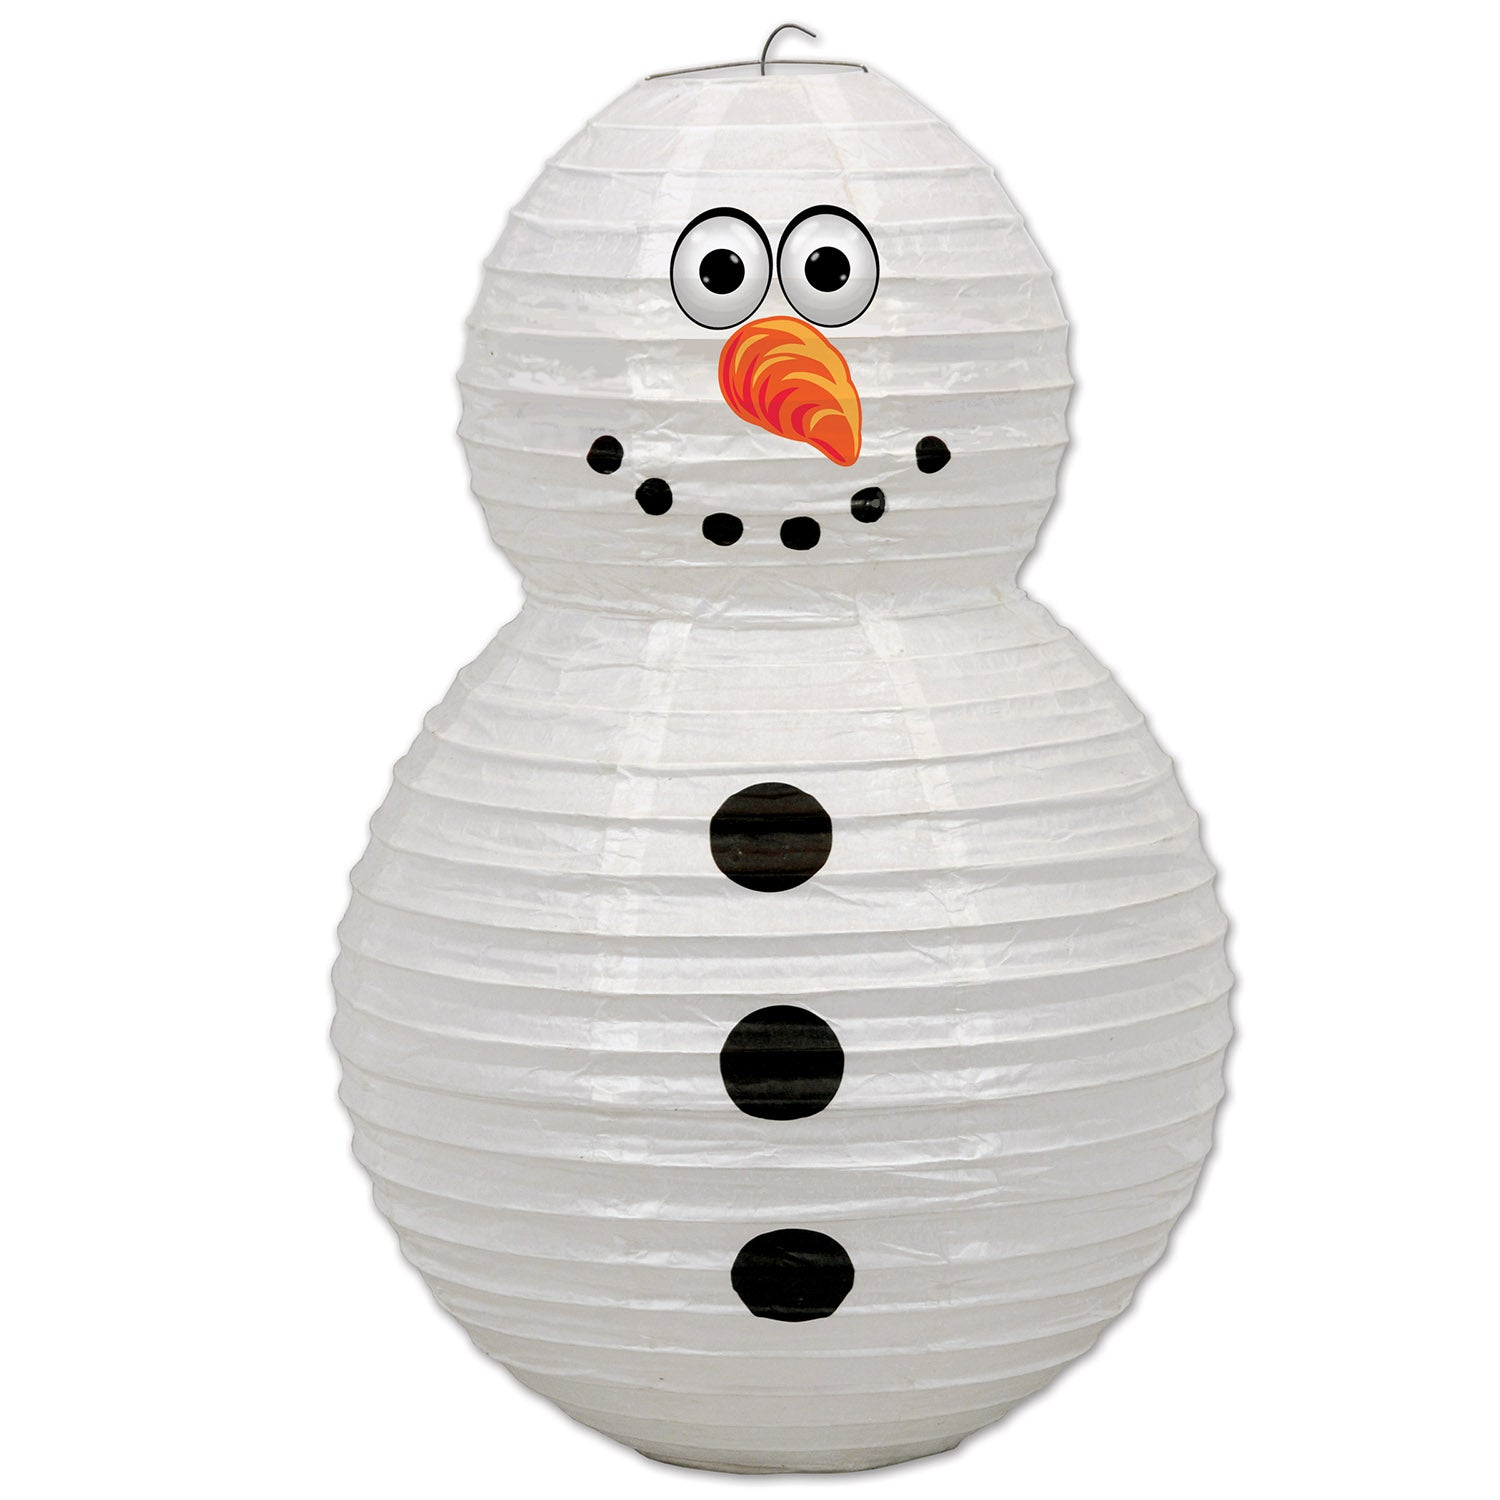 Snowman Paper Lantern by Beistle - Winter and Christmas Theme Decorations